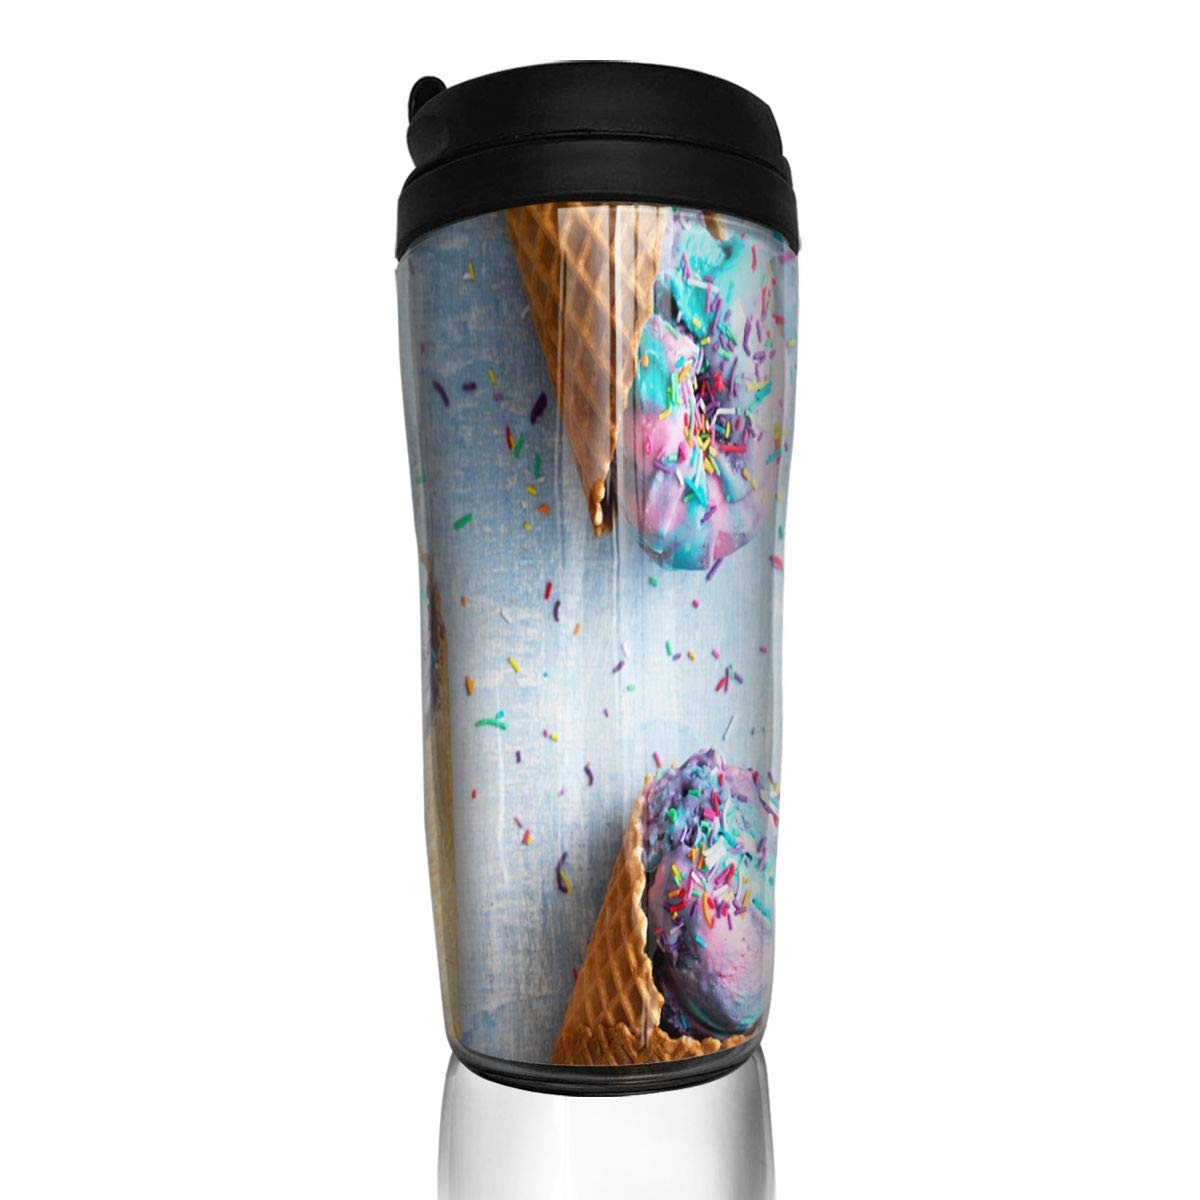 Coffee Cups Unicorn Ice-Cream Cones Recipe Travel Tumbler Insulated Leak Proof Drink Containers Holder Inspiring 12 Ounces